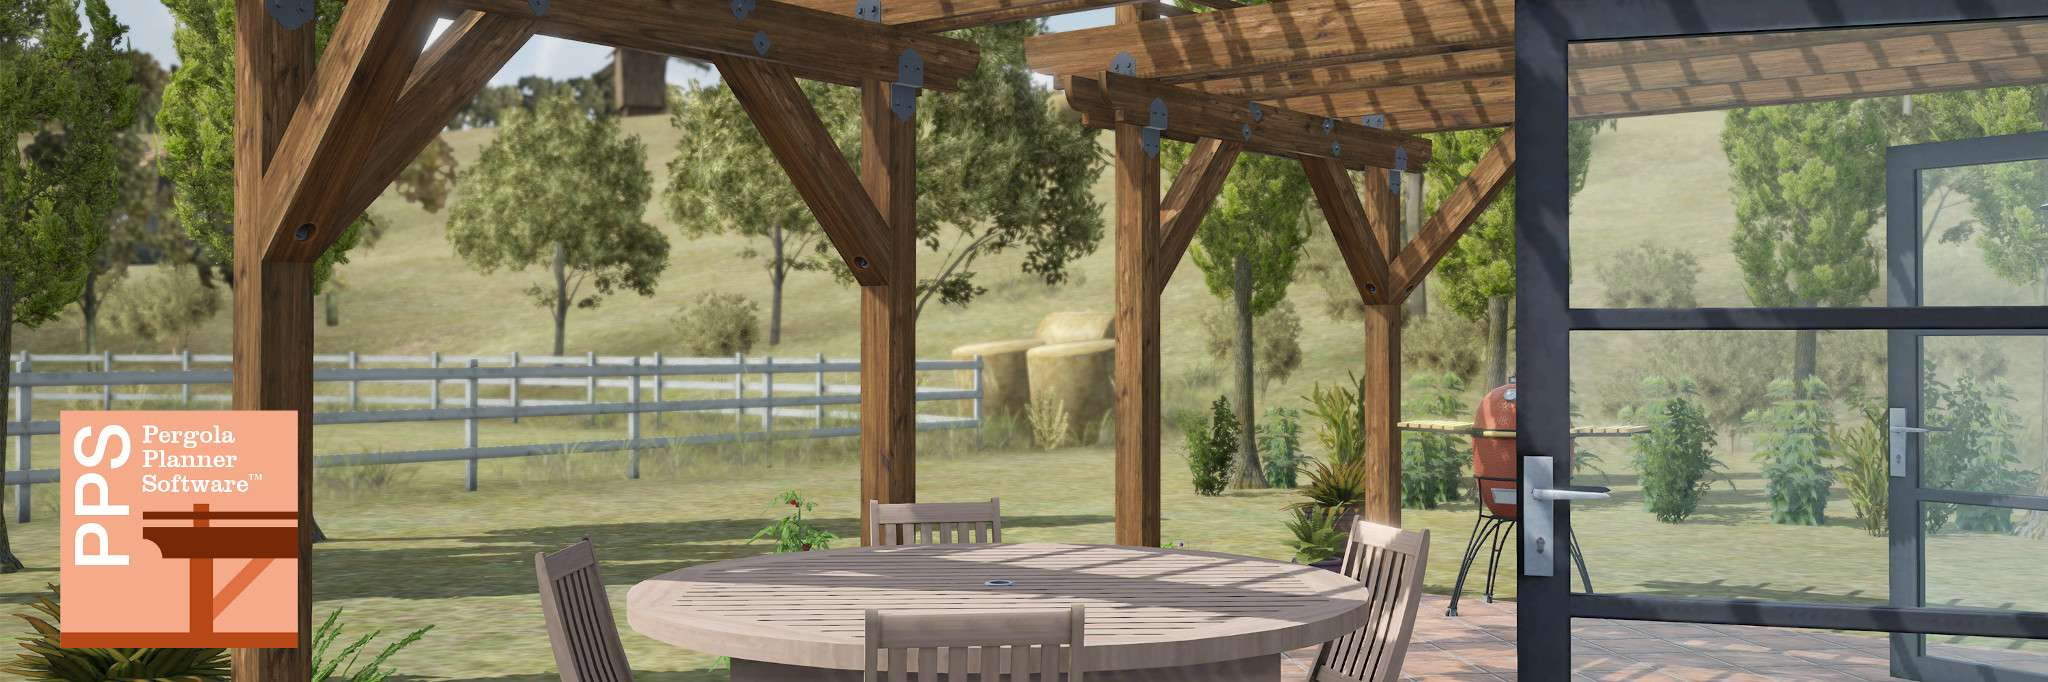 Simpson Strong-Tie Pergola Planner Software